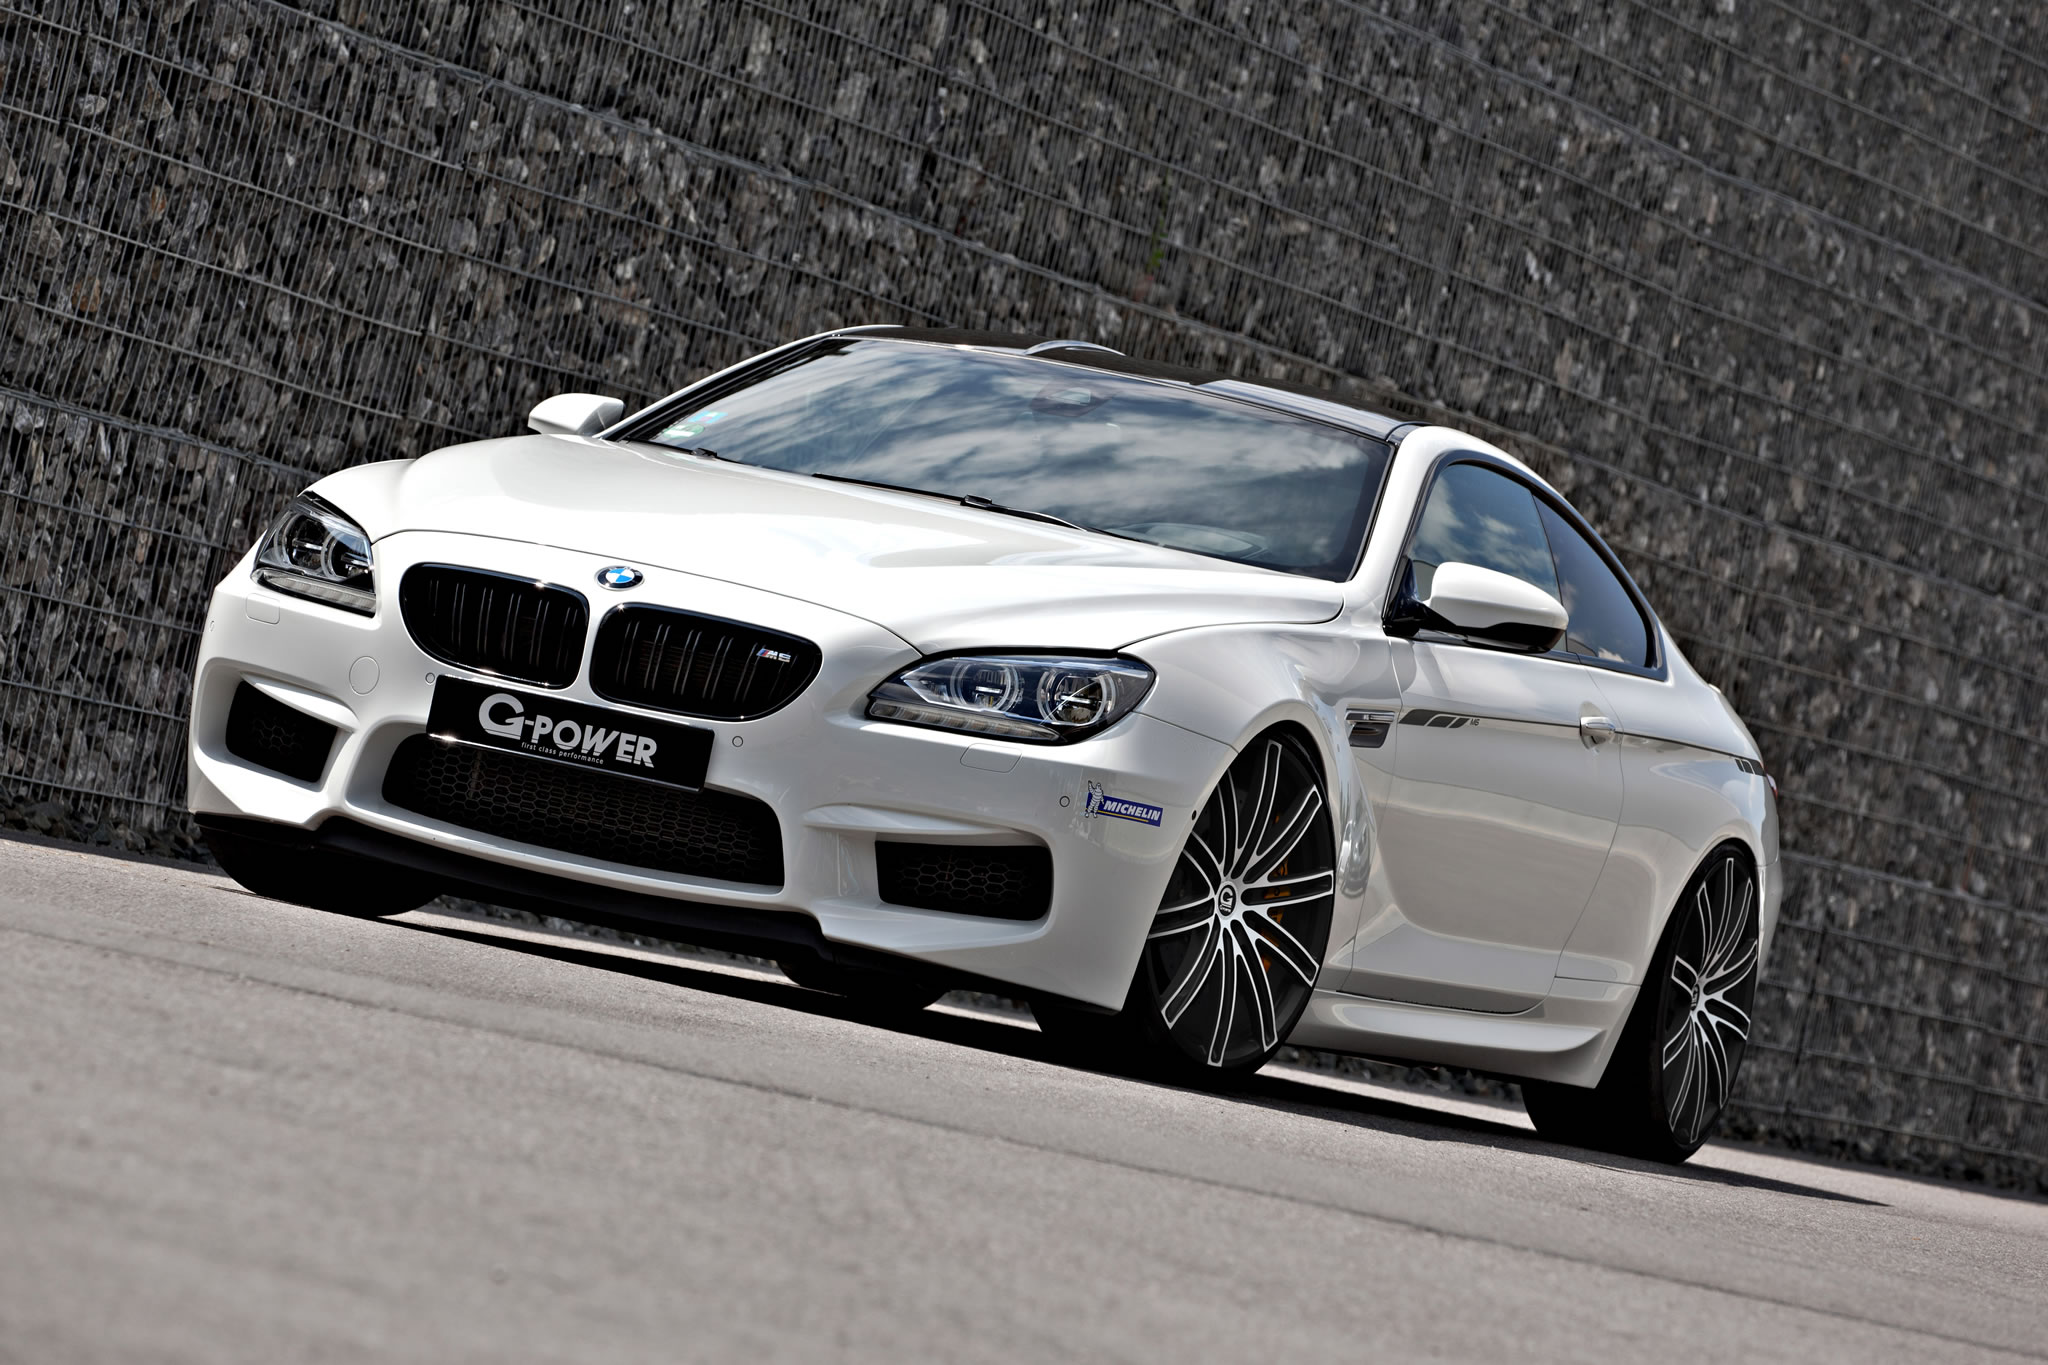 2013 BMW M6 Coupe by G-Power - front photo, white, size ...